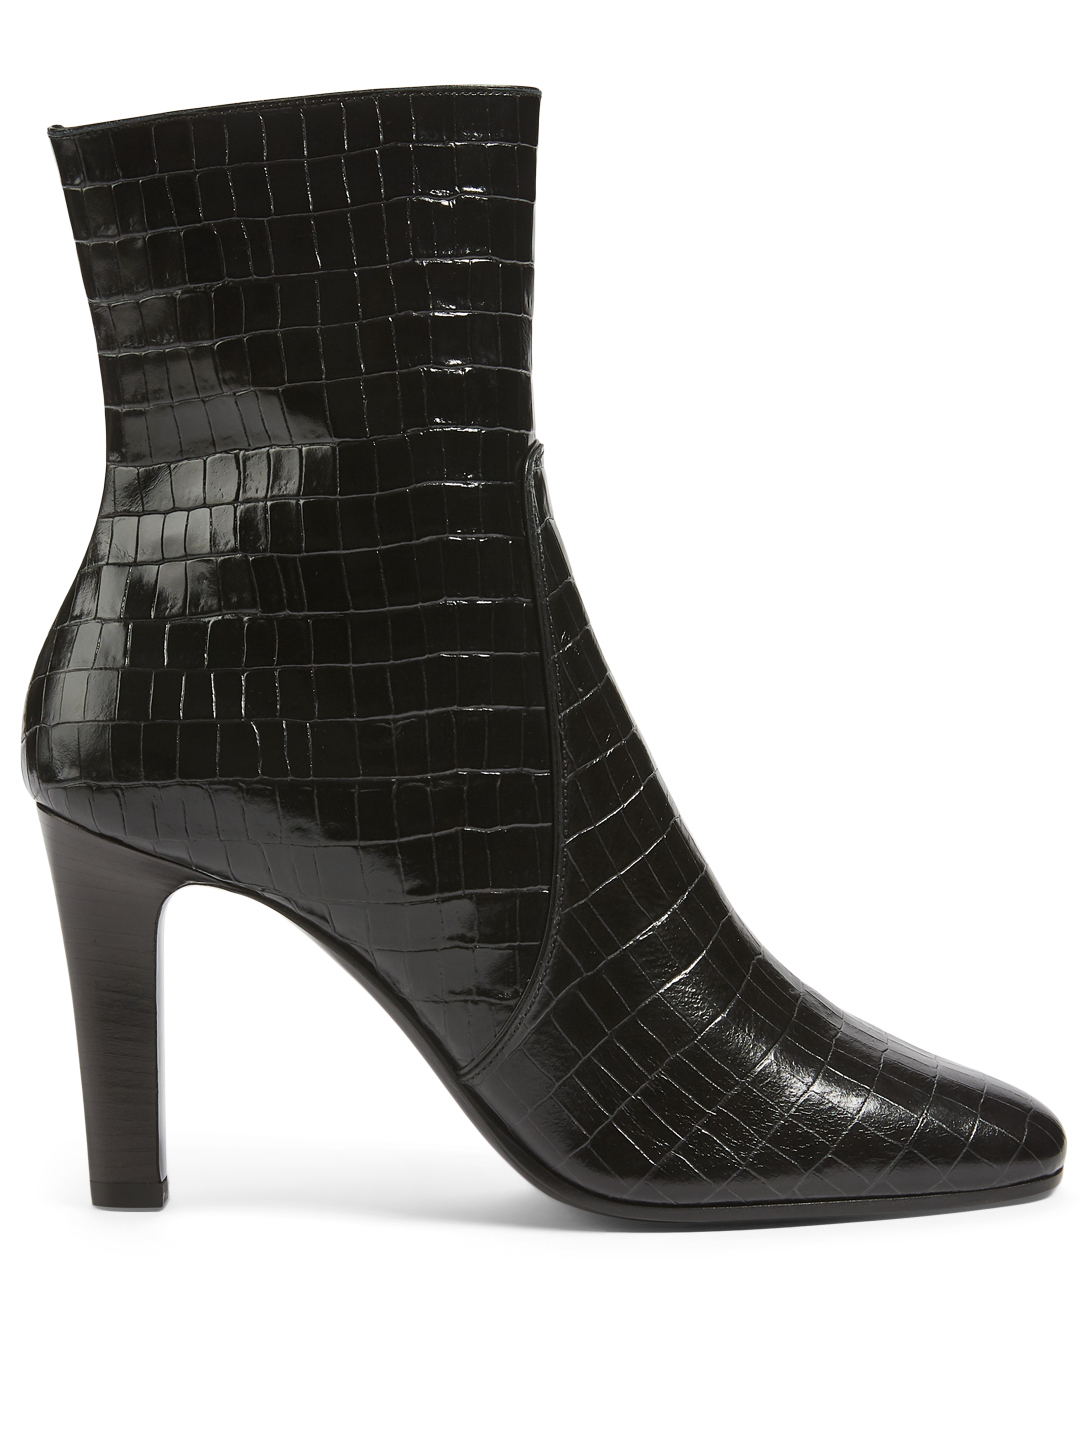 SAINT LAURENT Jane 90 Croc-Embossed Leather Heeled Ankle Boots Women's Black